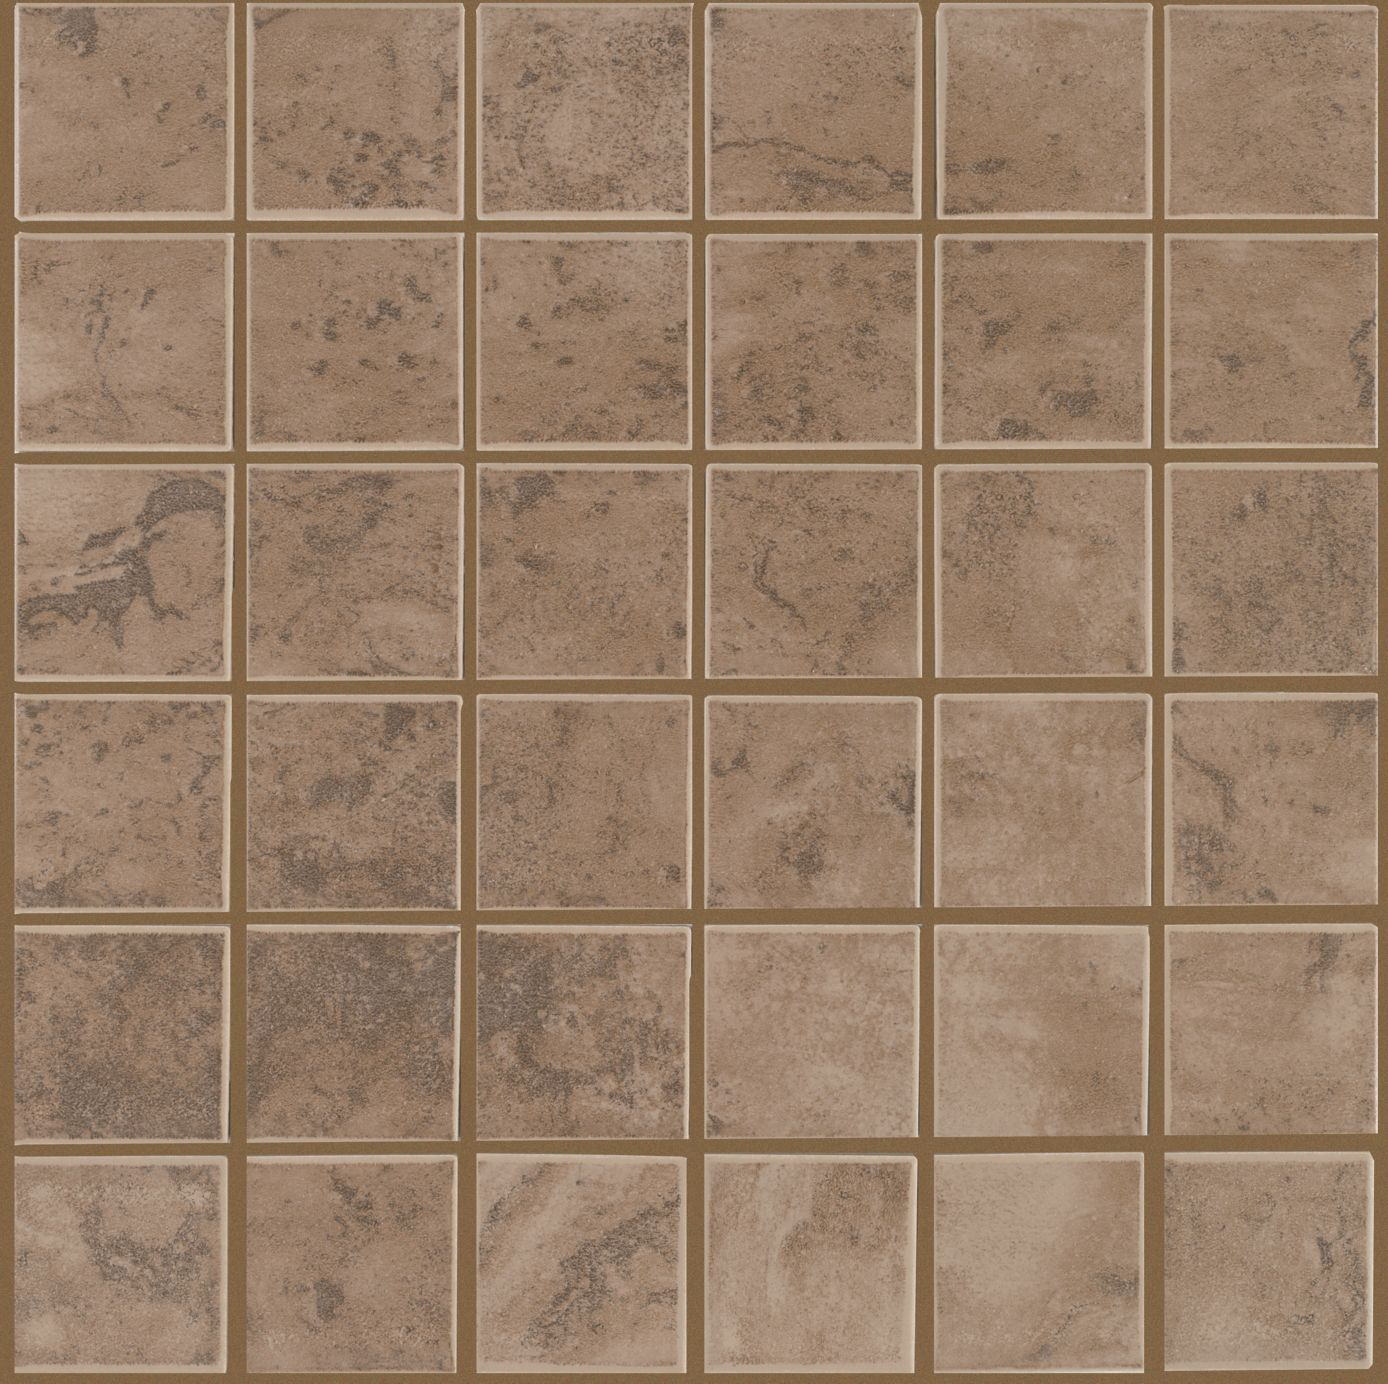 CeramicPorcelainTile PacardieWall T717F-PS02 BrownSuede